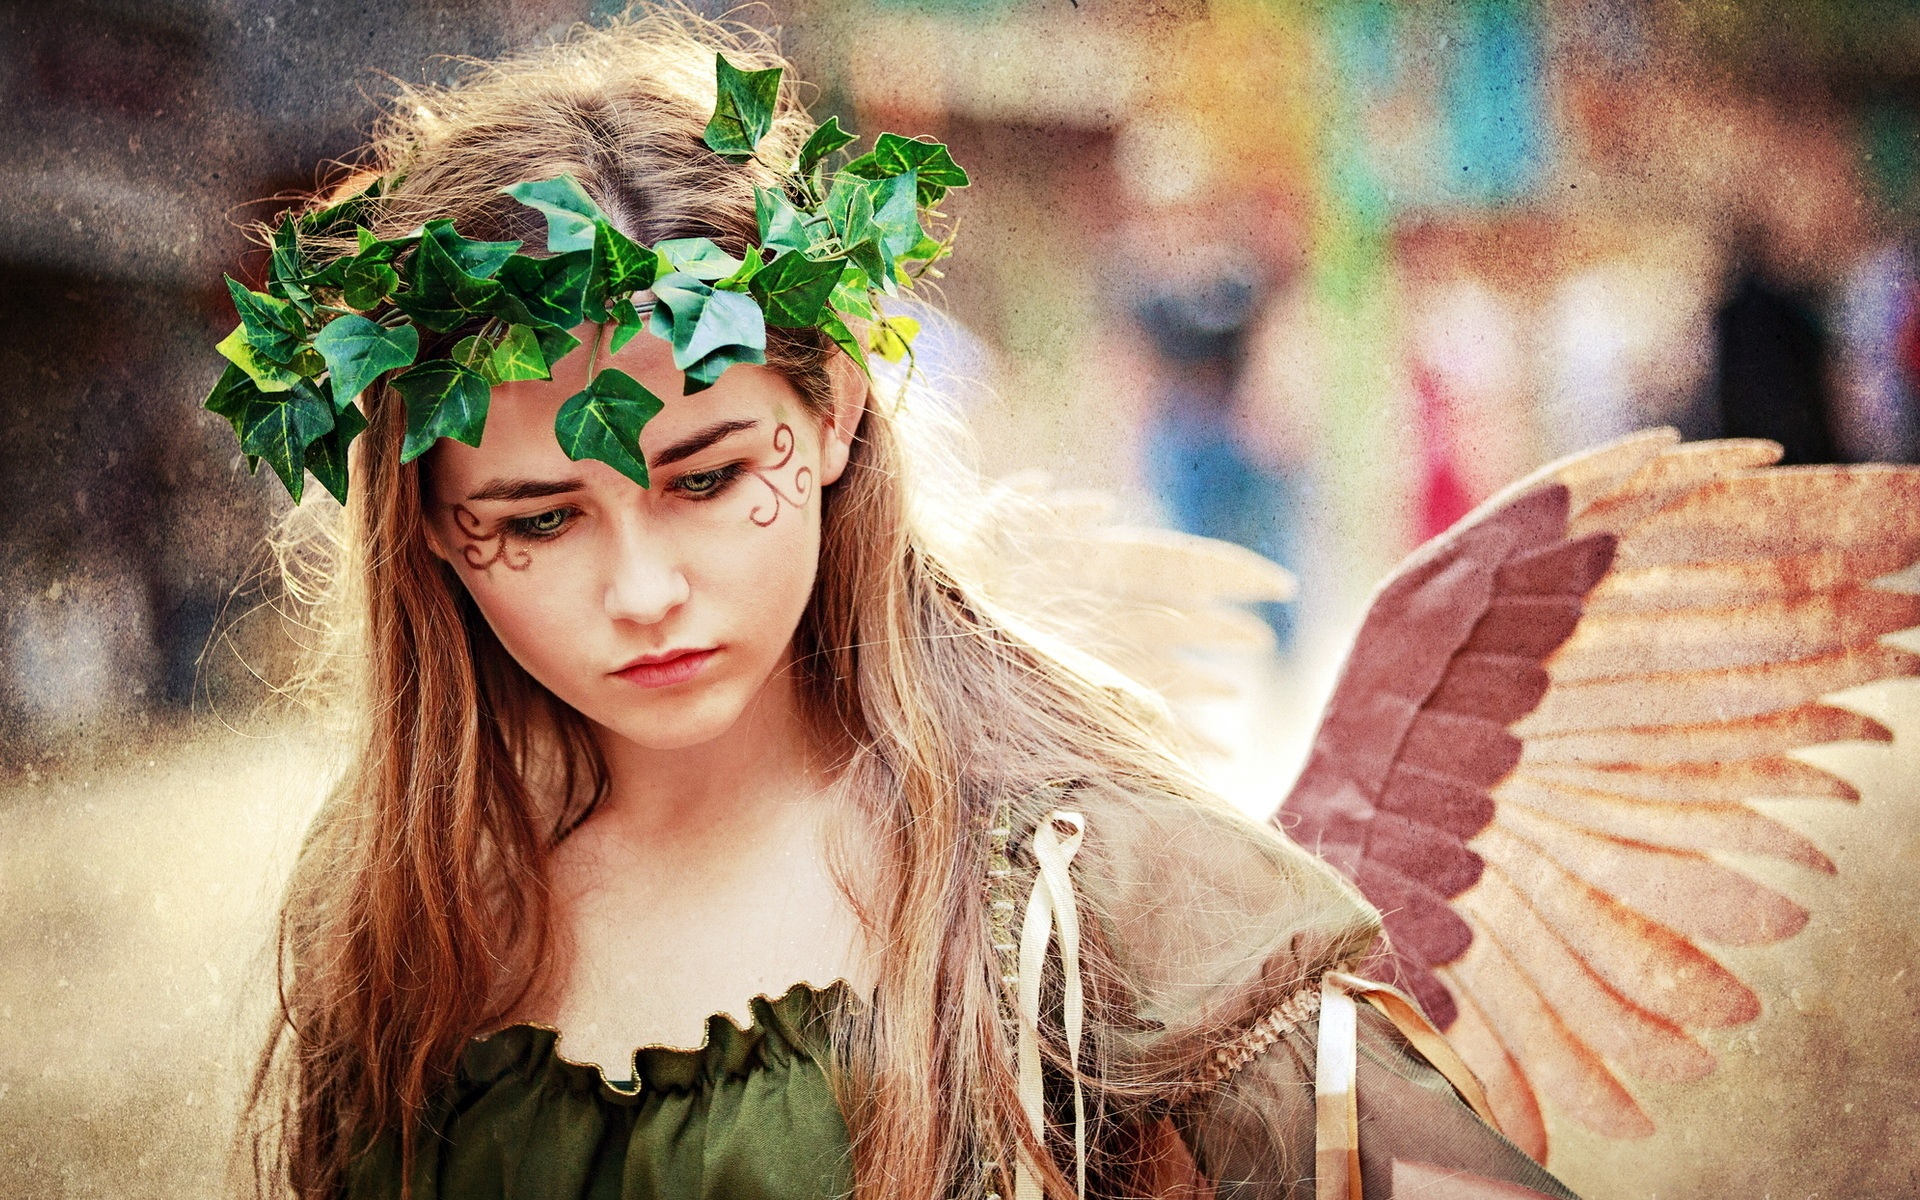 Wallpaper Angel Girl In Summer 1920x1200 HD Picture Image